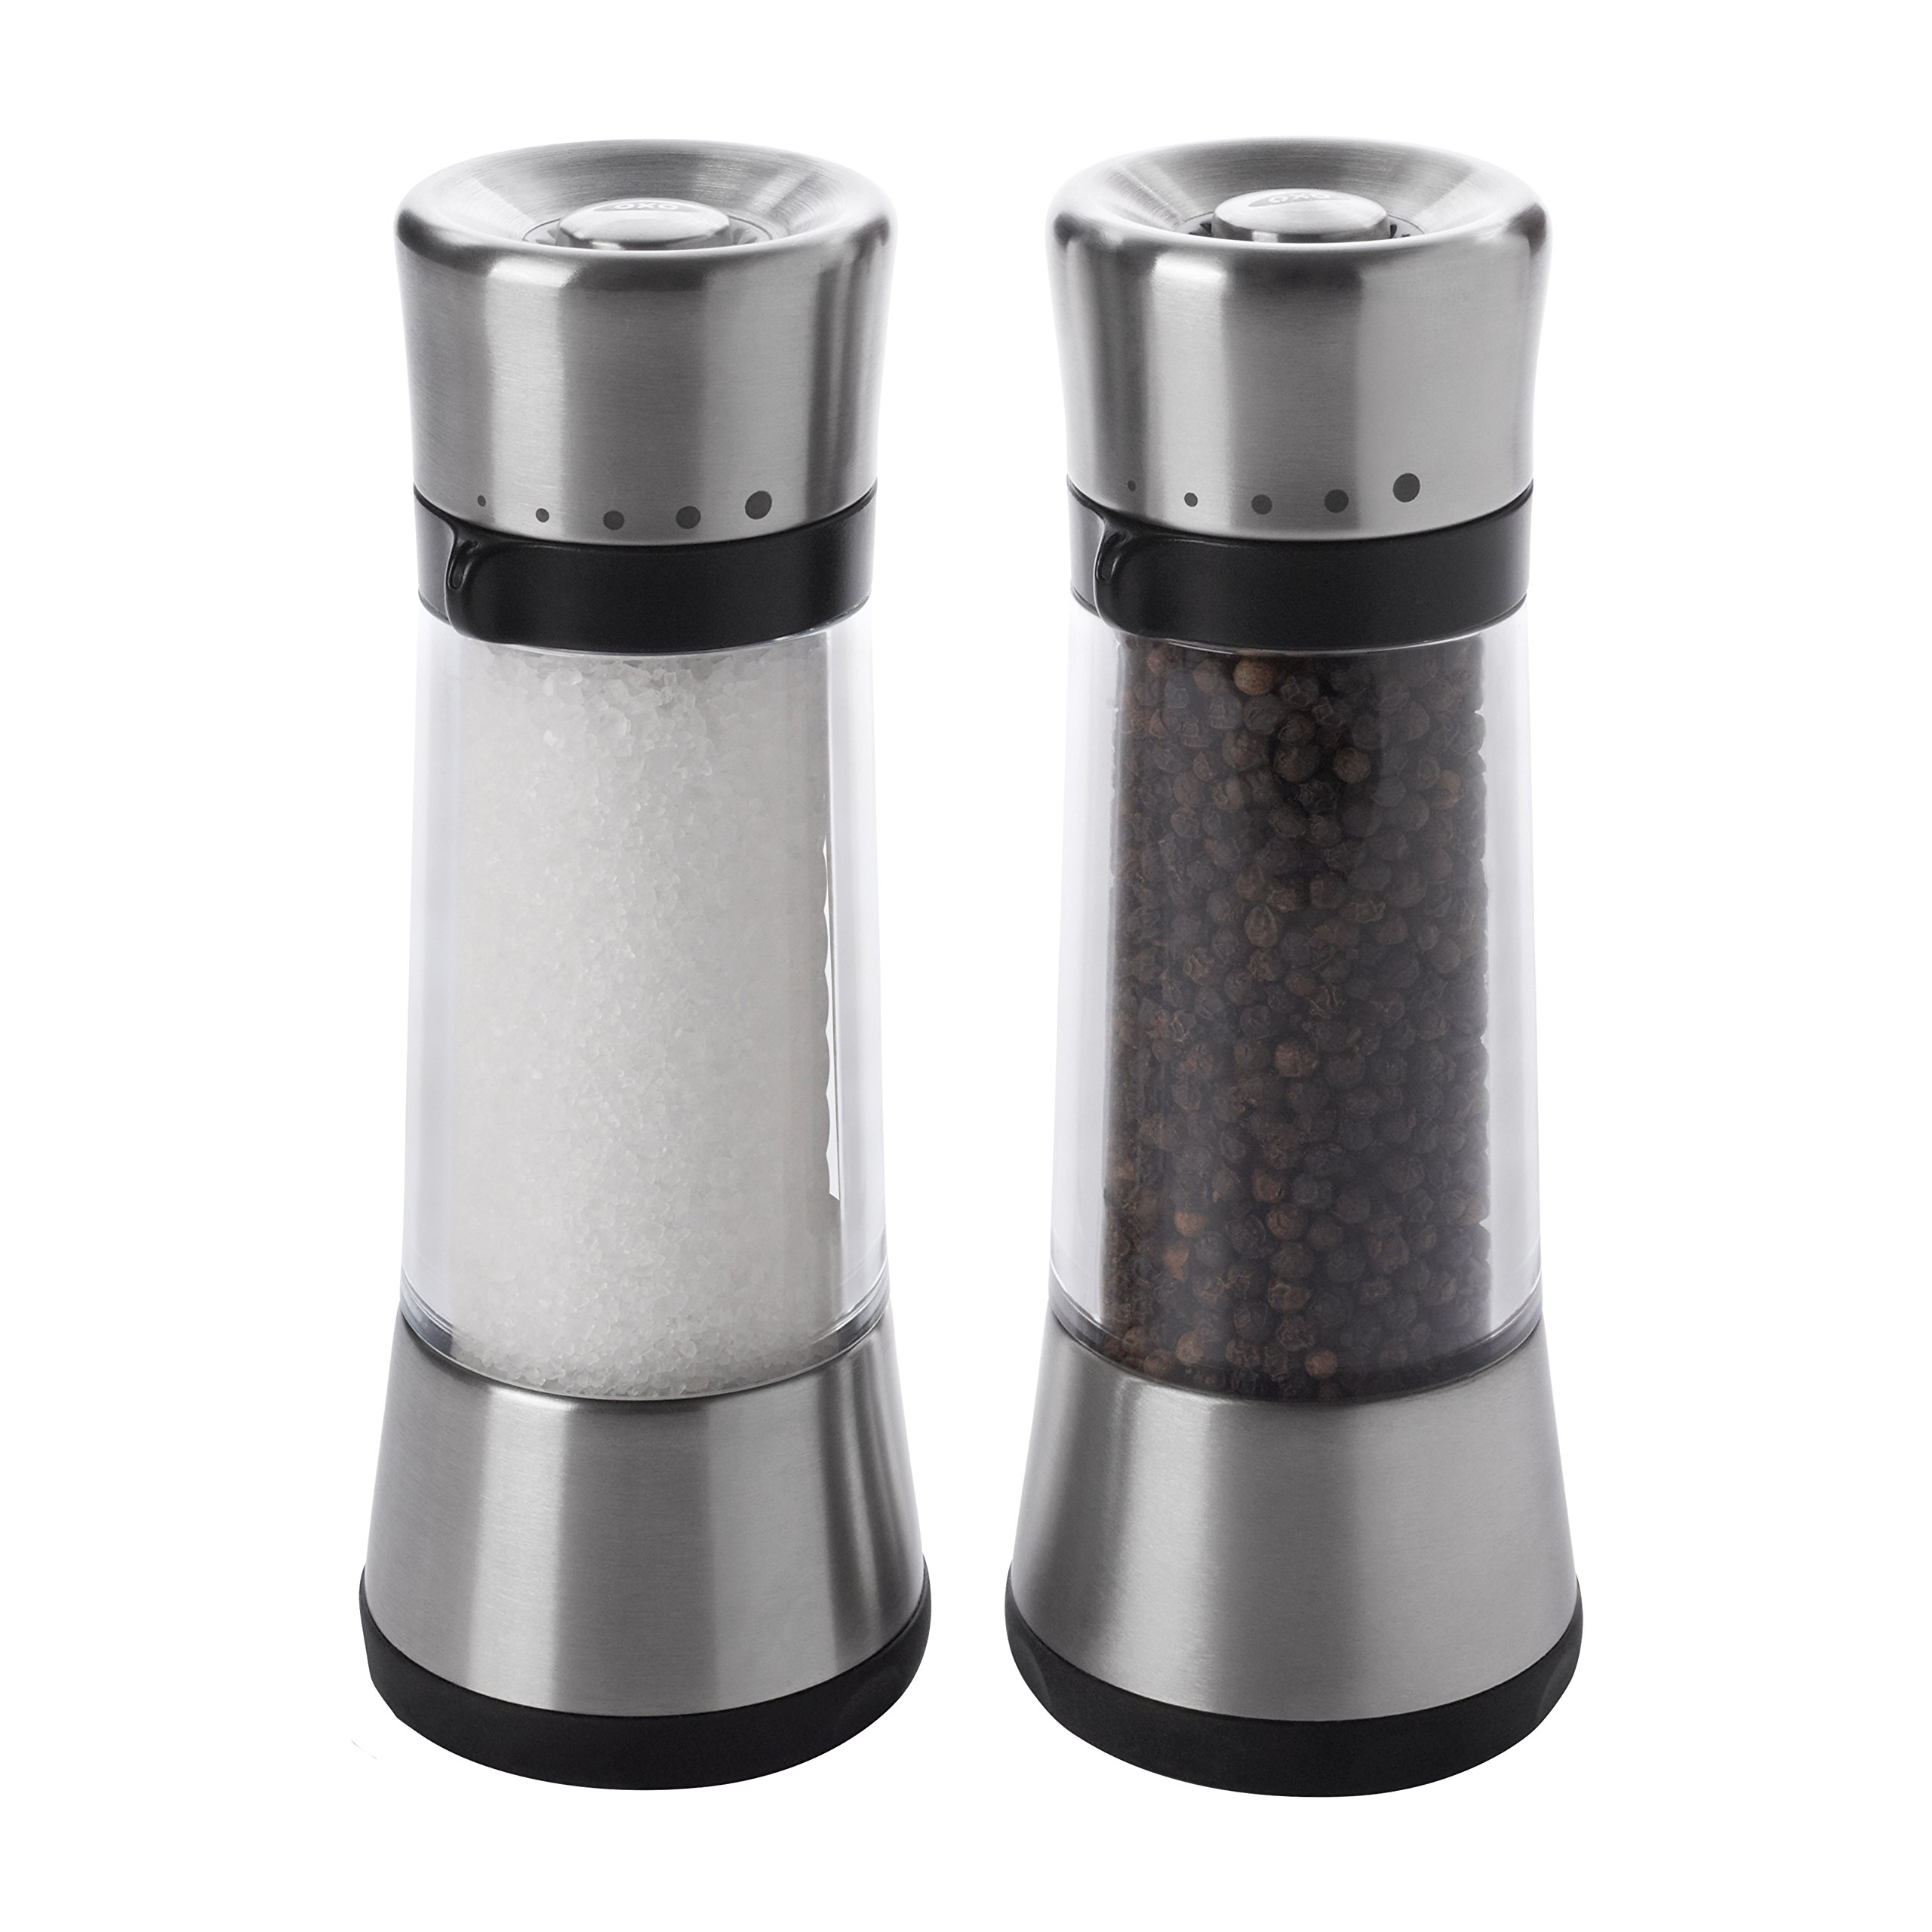 OXO Good Grips Salt and Pepper Mill Set with Adjustable Grind Size by OXO